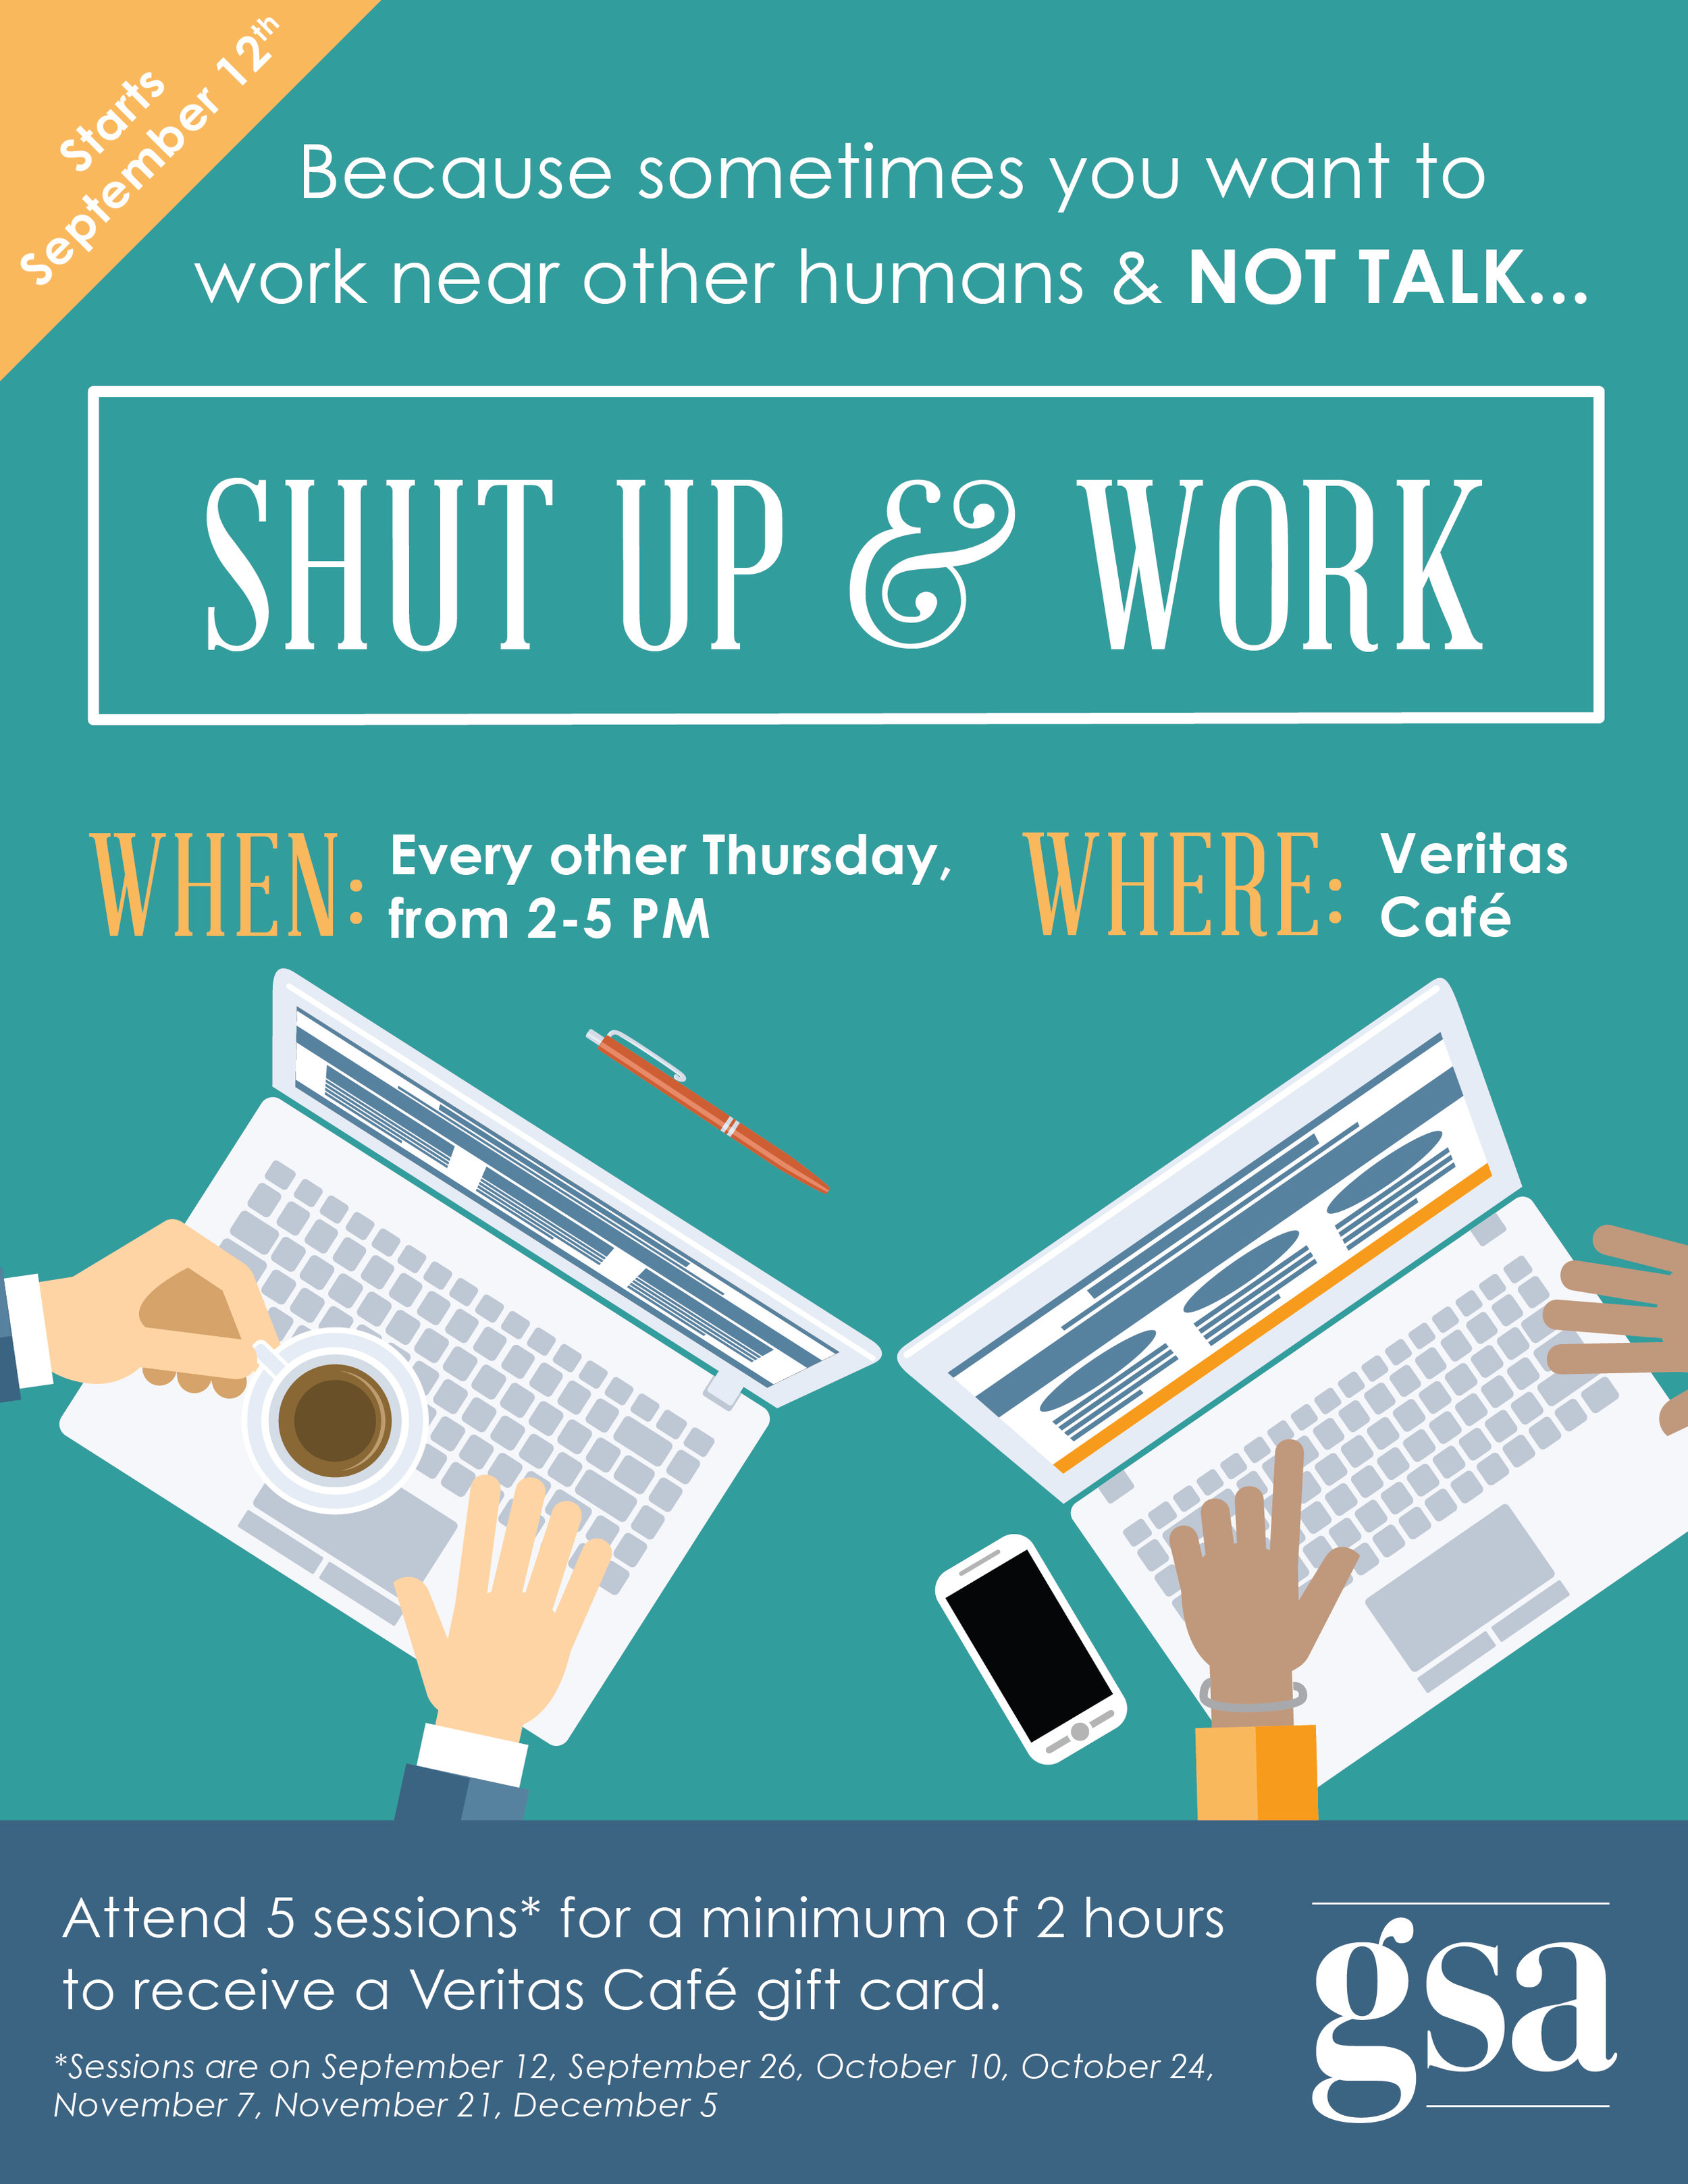 Join us for Shut Up & Work because sometimes you want to work near other humans & not talk... Every other Thursday from 2-5 PM beginning September 12th in Veritas Cafe. Attend 5 sessions* for a minimum of 2 hours to receive a Veritas Café gift card. Sessions are on September 12, September 26, October 10, October 24, November 7, November 21, and December 5.